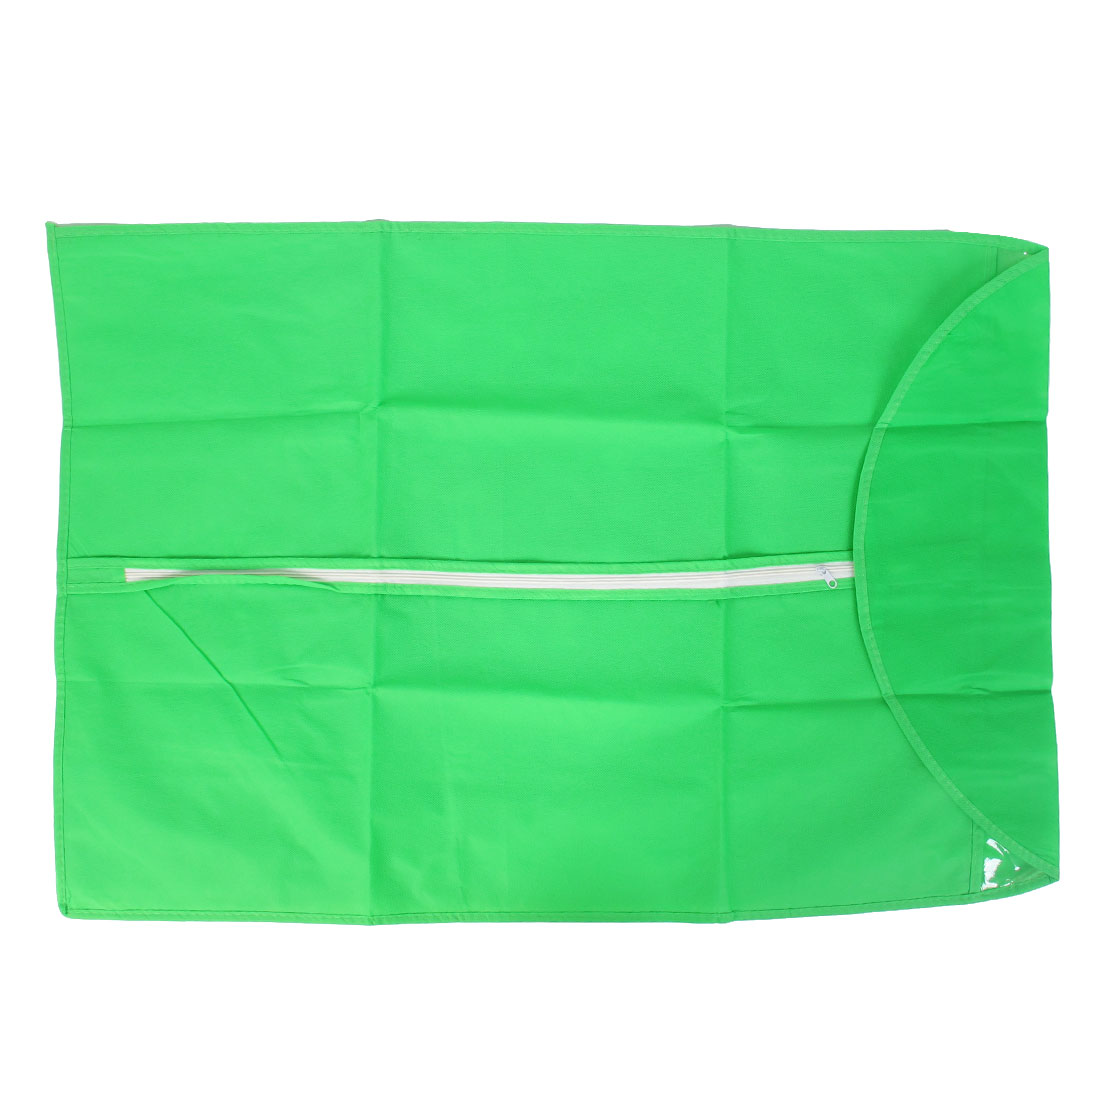 "Garment Suit Dress Jacket Clothes Coat Dustproof Cover Protector Storage Bag 40"" x 23"" Green"